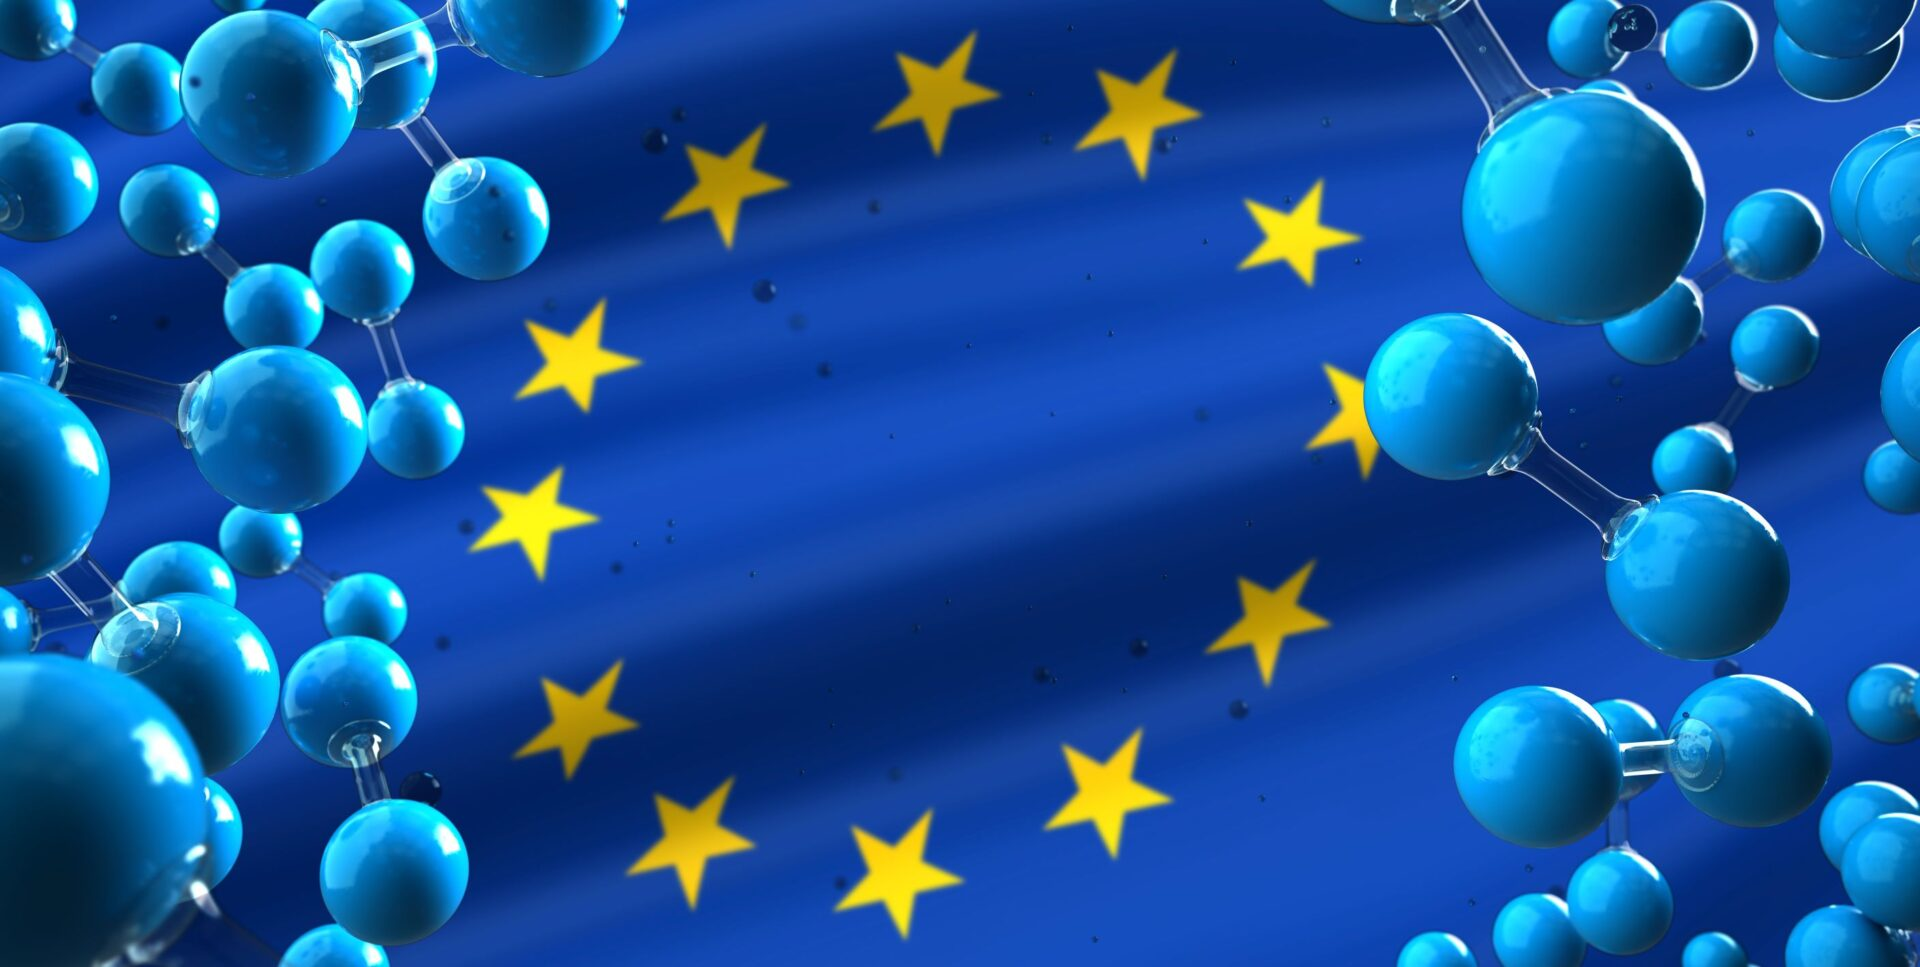 EU flag and hydrogen